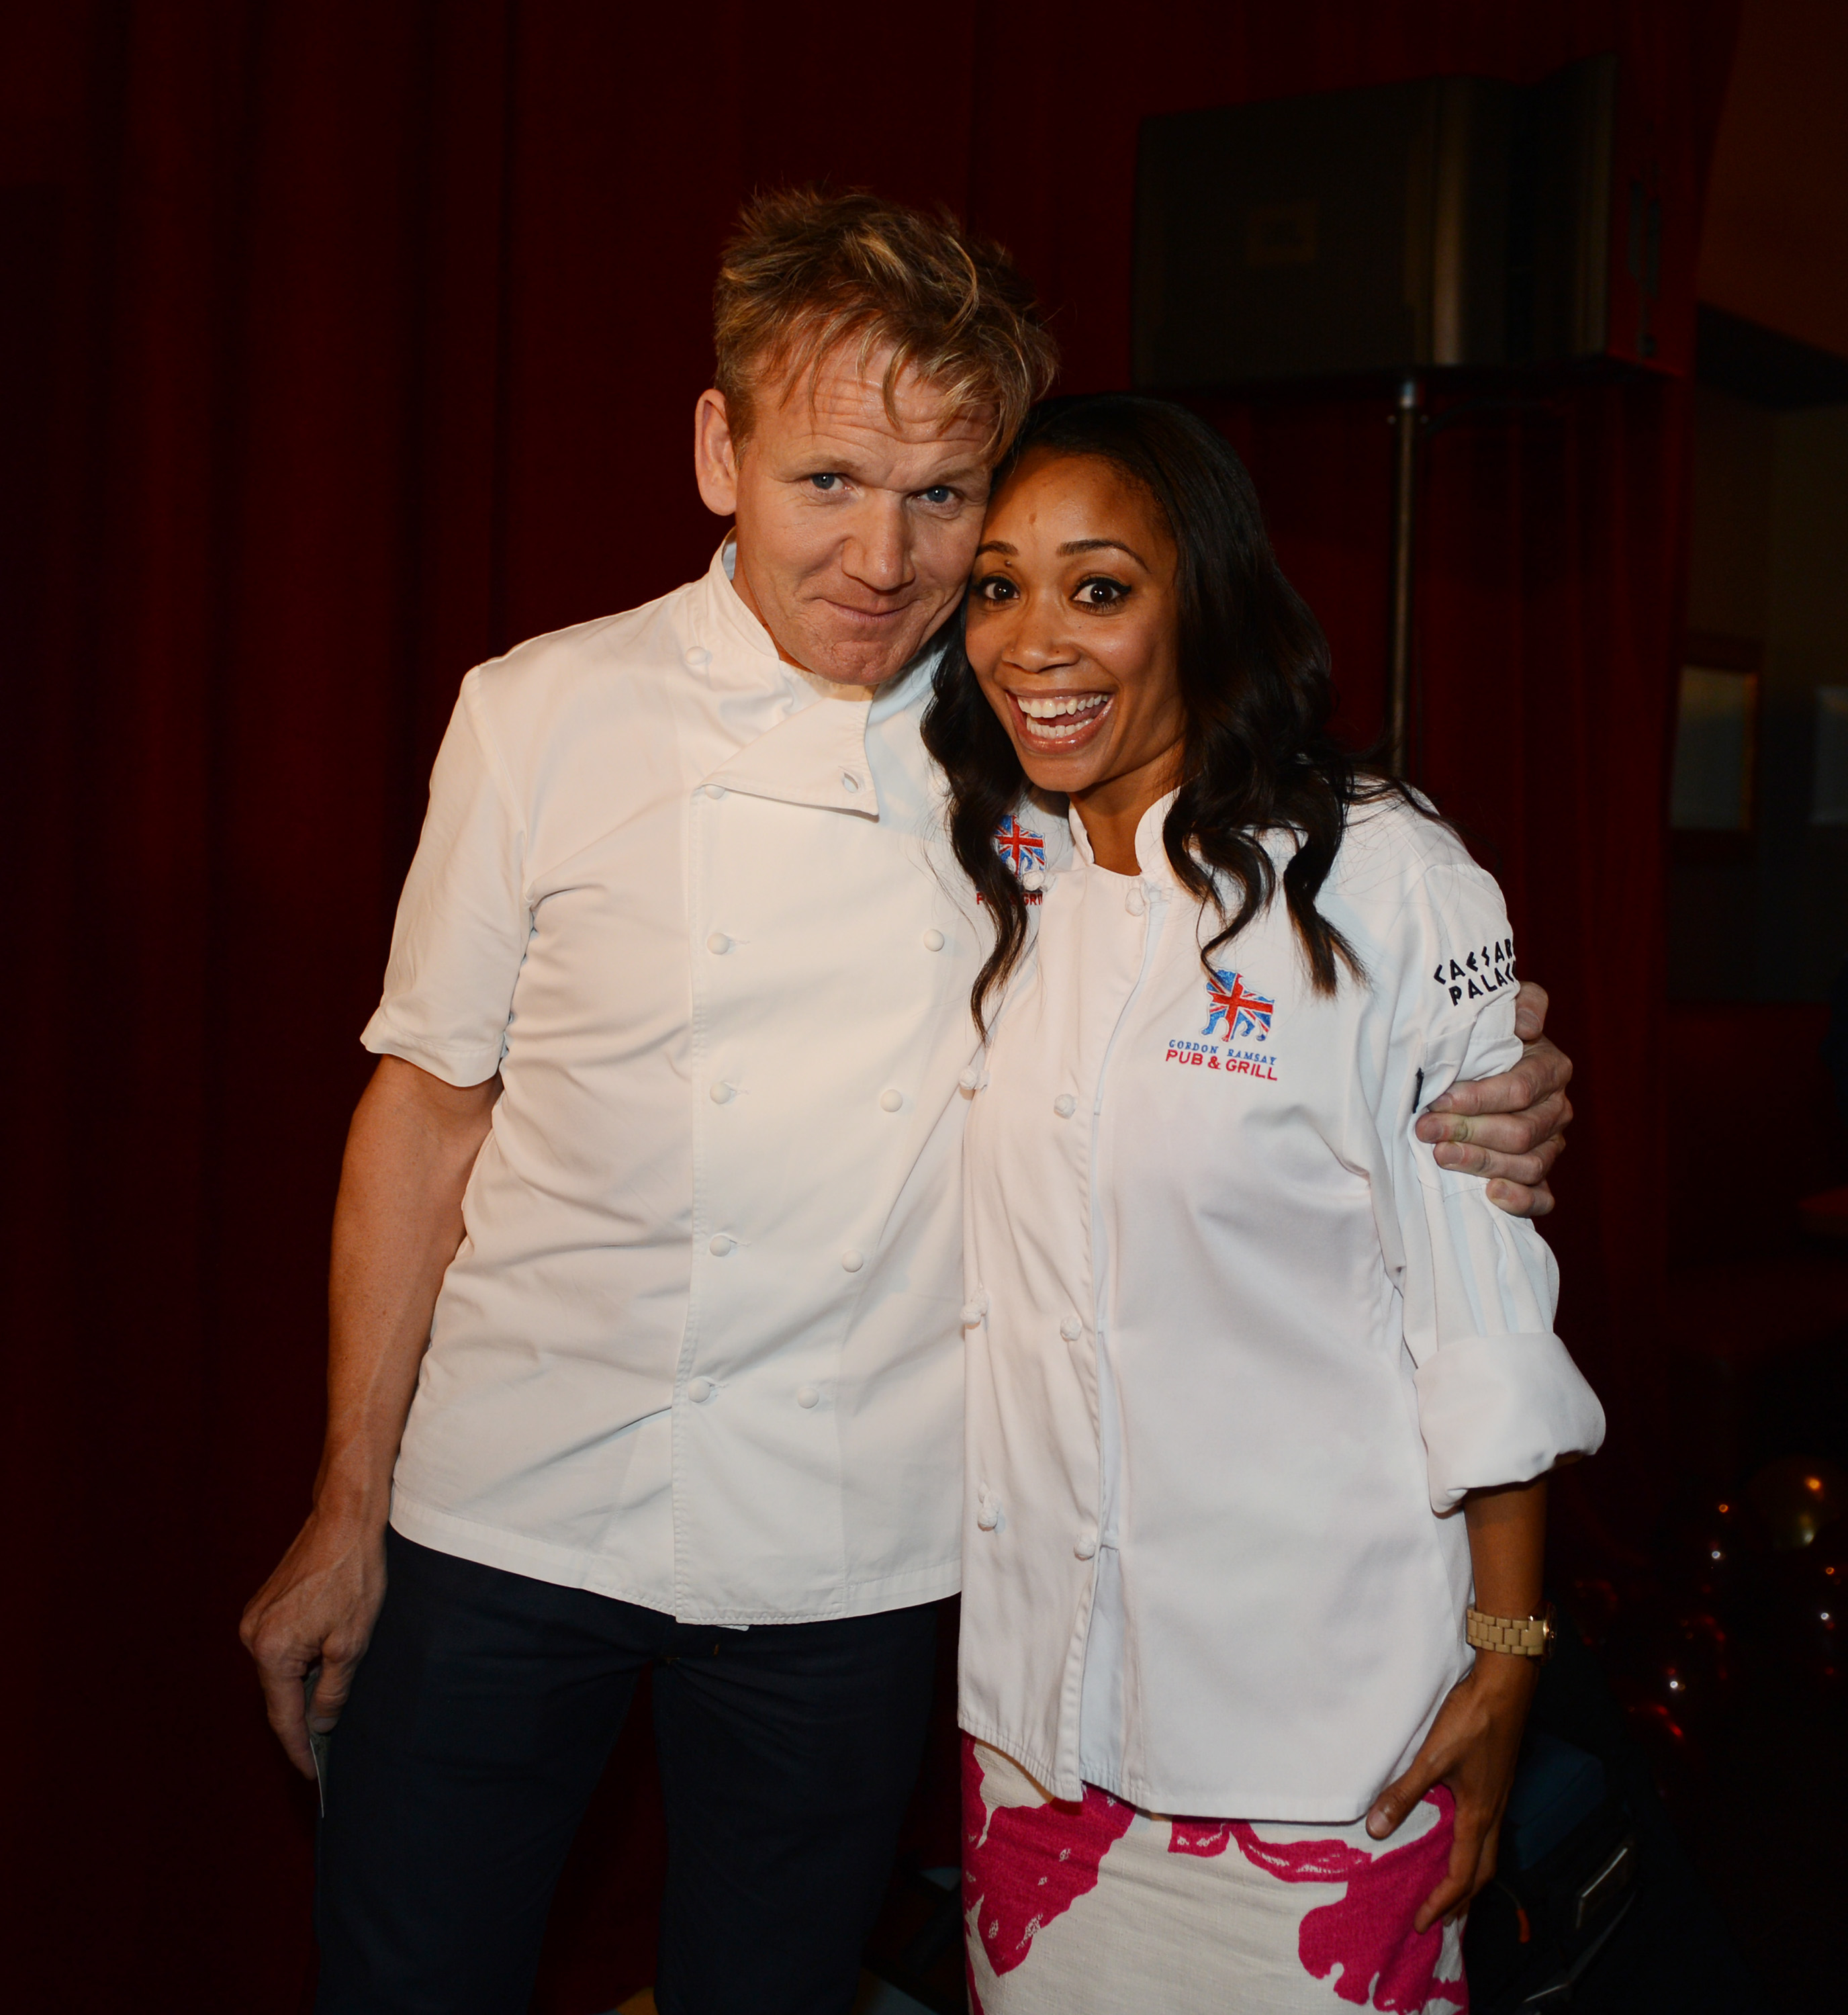 Hell's Kitchen Season 11 winner, Ja'Nel Witt, and Chef Gordon